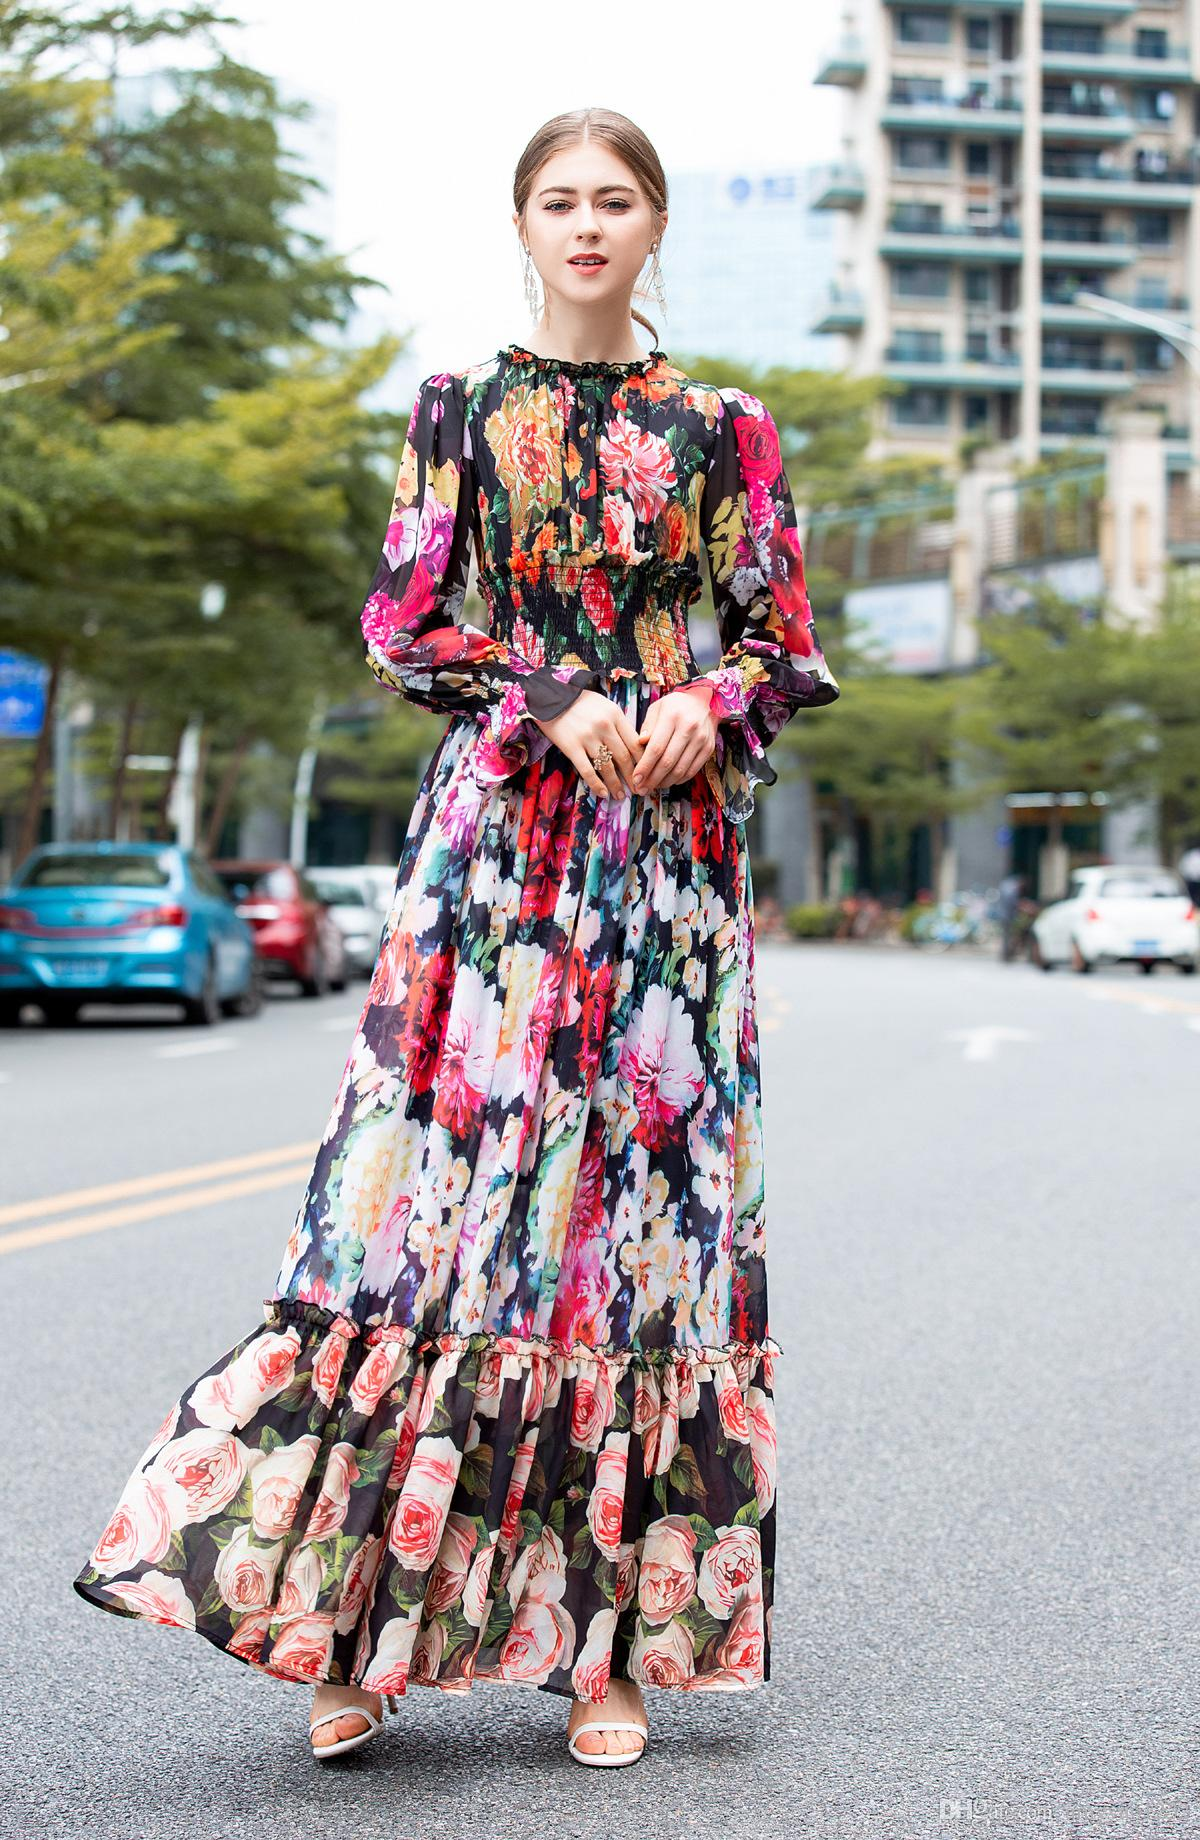 407 2019 Free Shipping Wedding Dress Crew Neck A Line Empire Prom Luxury Dress Ankle Length Long Sleeve Silk Polyester AS